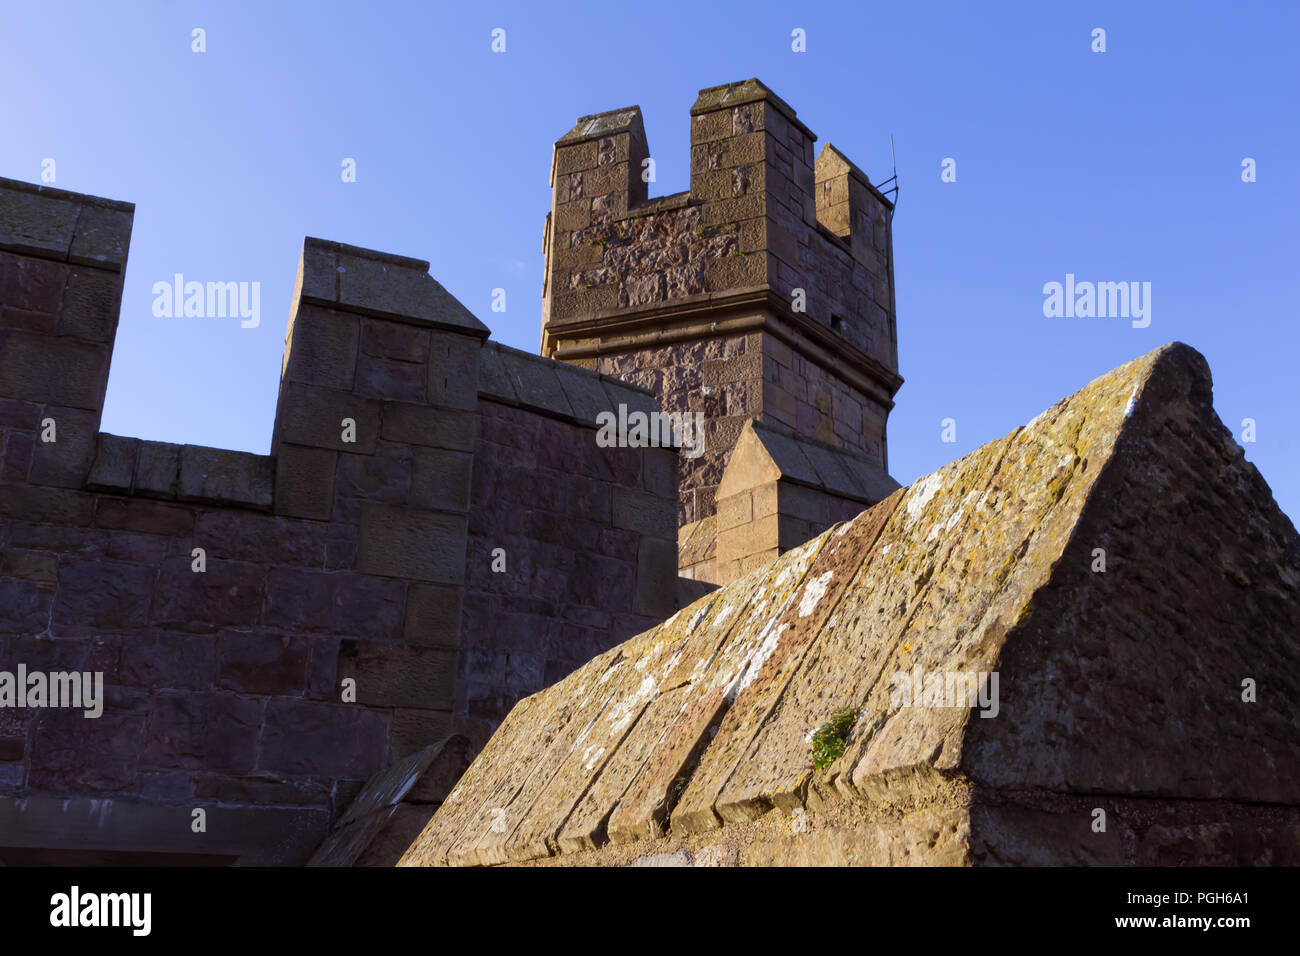 December 2017, North Wales, UK - walls and towers of 13th century Conwy castle, built by Edward I, during his conquest of Wales; it is UNESCO World He Stock Photo